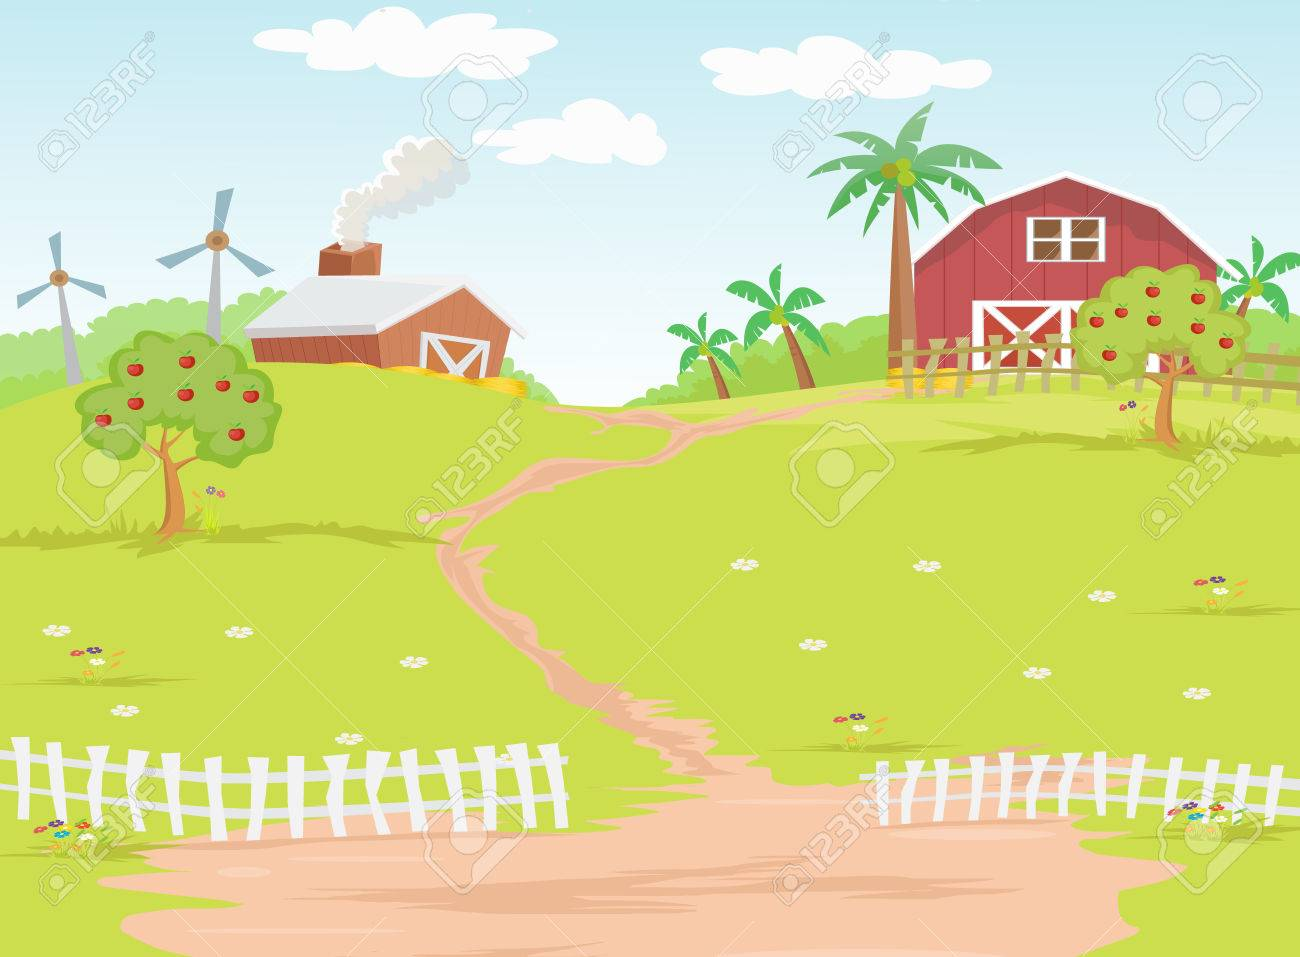 Background farm in the countryside.